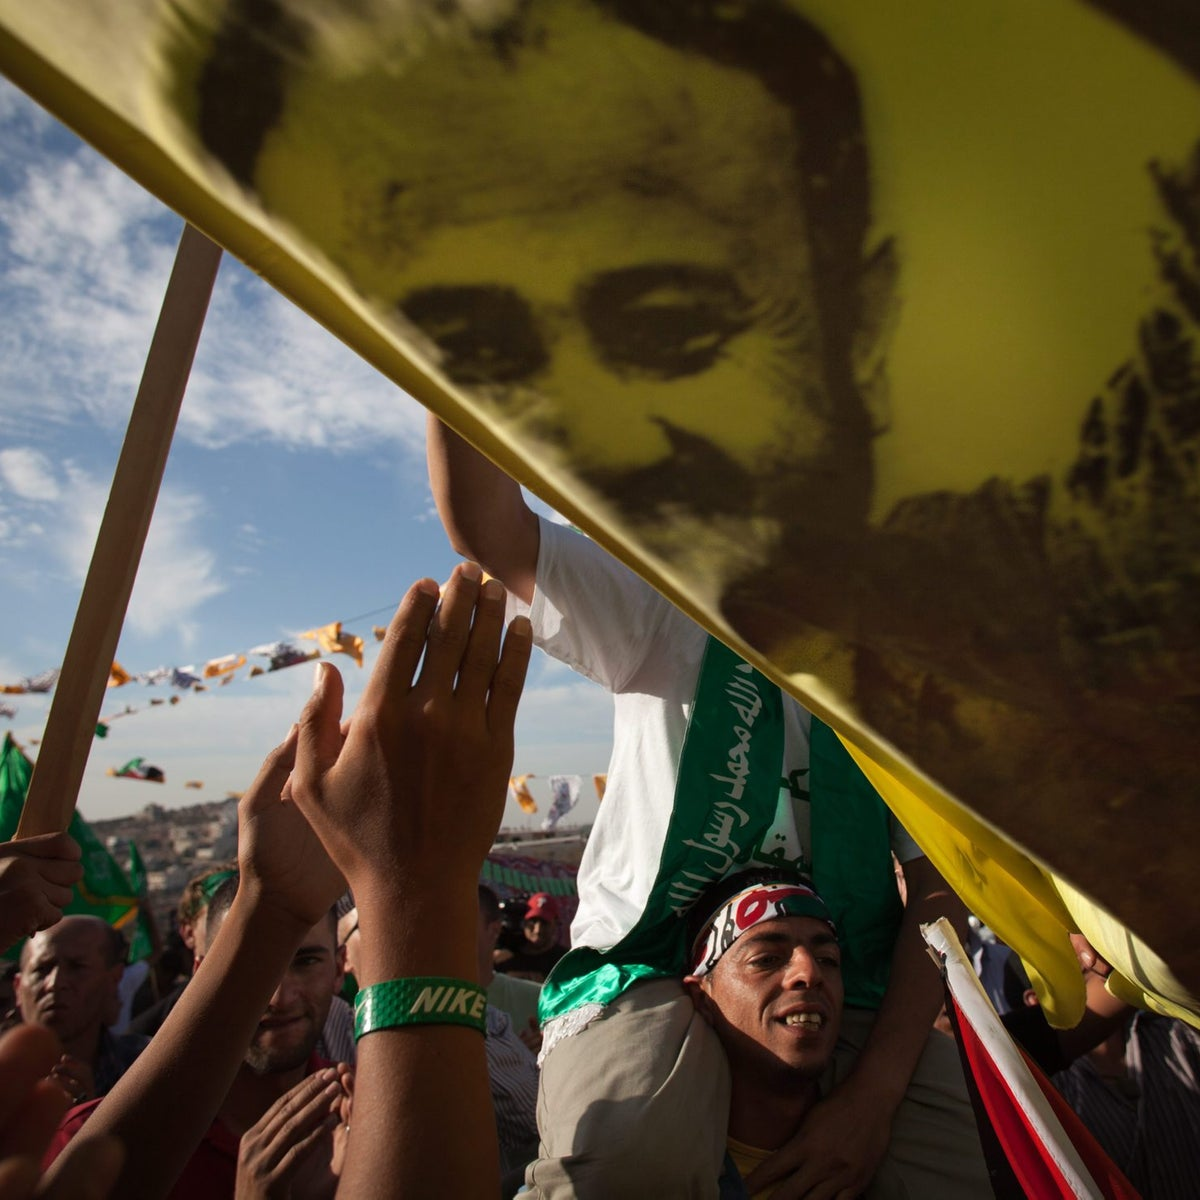 Palestinians celebrating the Shalit prisoner swap wave a flag with a picture of Marwan Barghouti in the West Bank village of Kobar, October 2011.